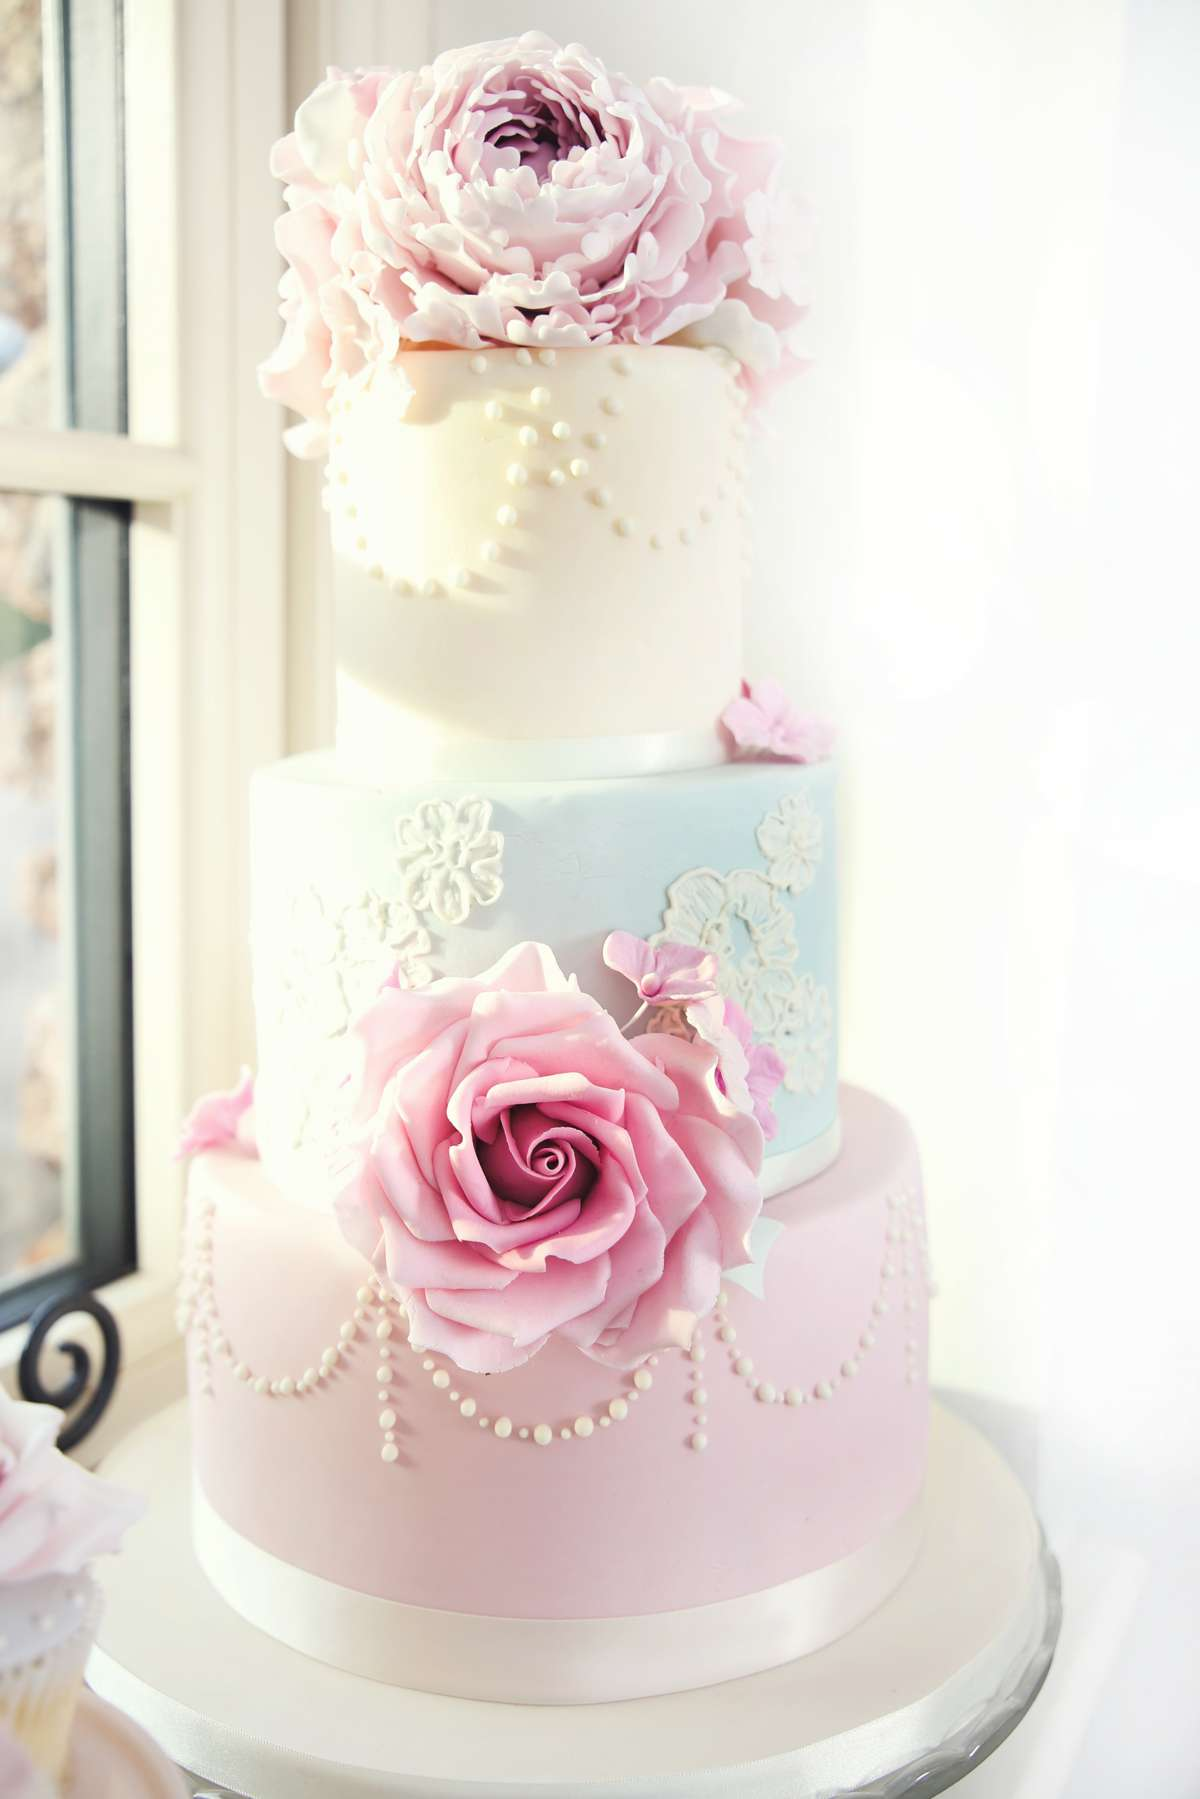 Cake Design In 2018 : Wedding cake trends for 2017 - Love Our Wedding